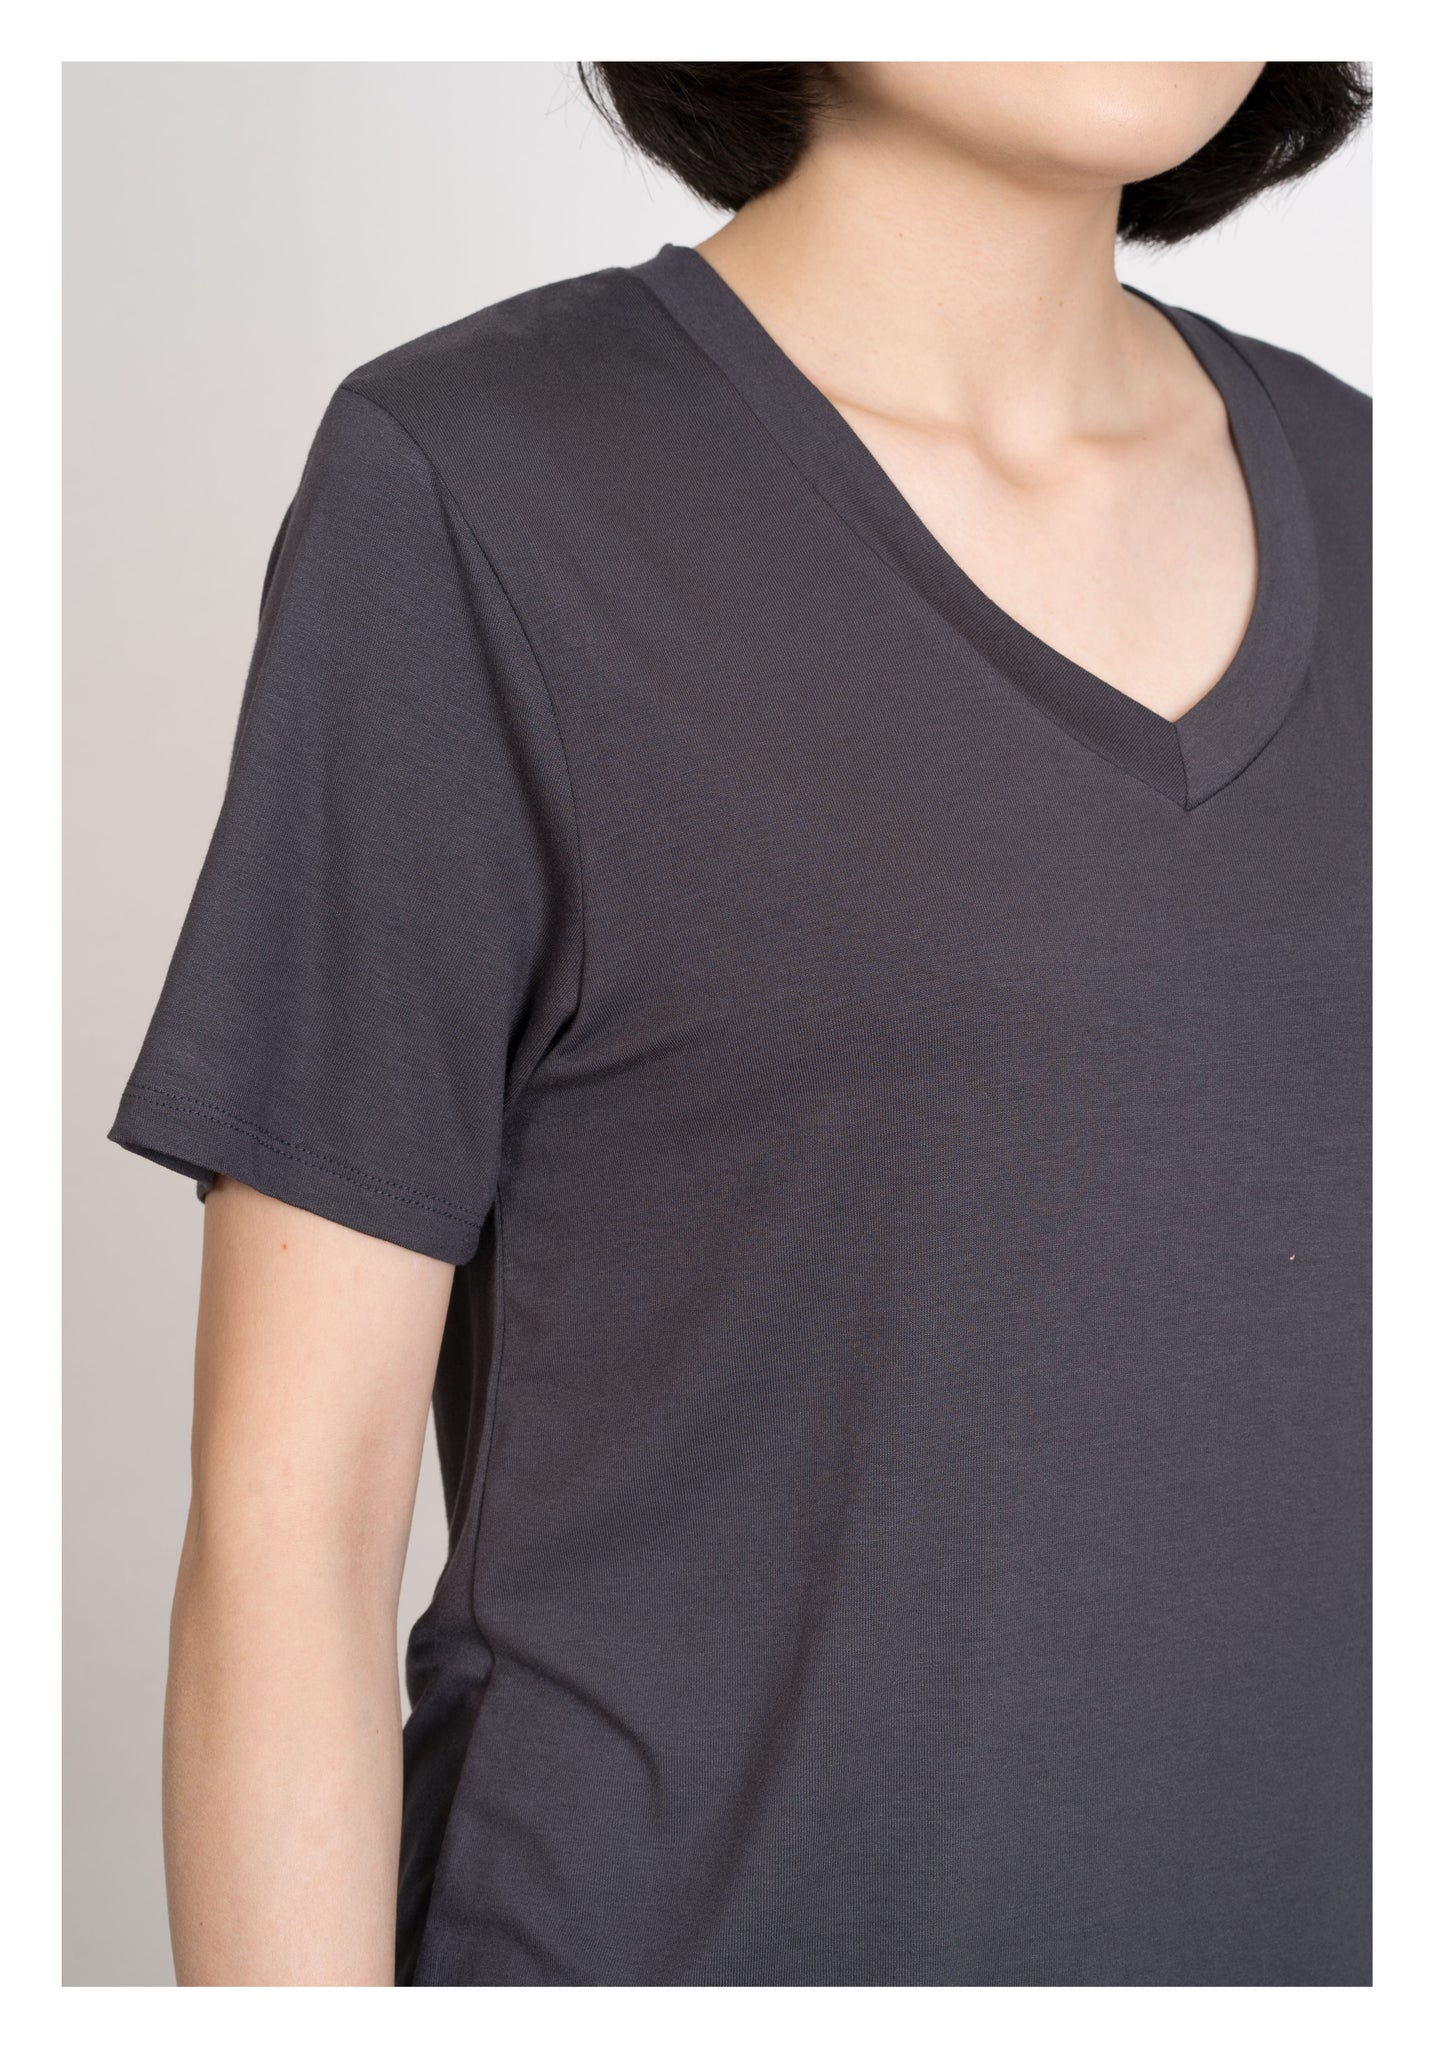 Comfy Silky V Neck Tee Charcoal - whoami